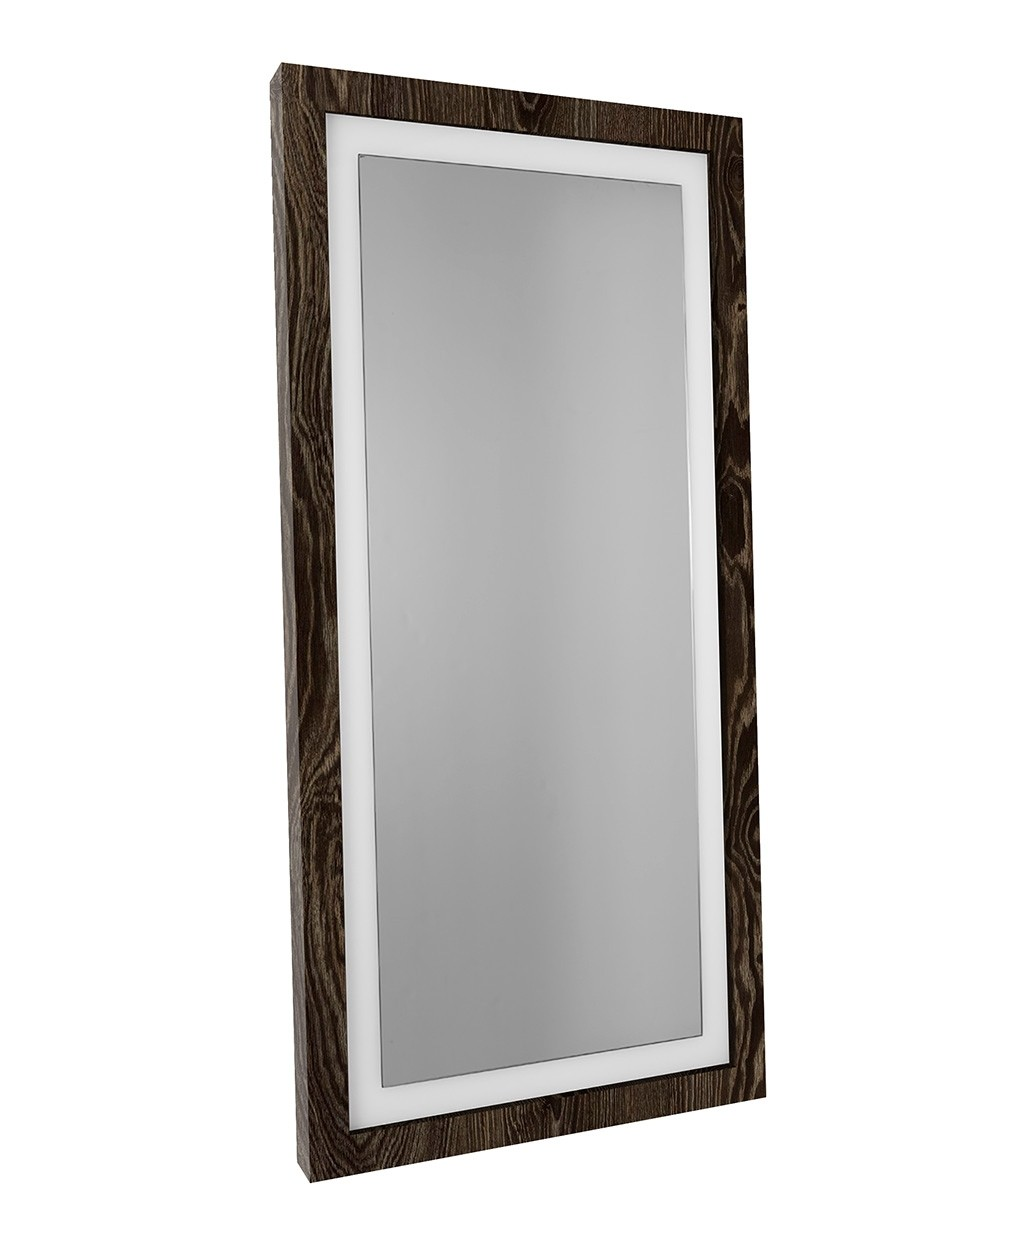 Galaxy Mirror Styling Station w/ LED Lights